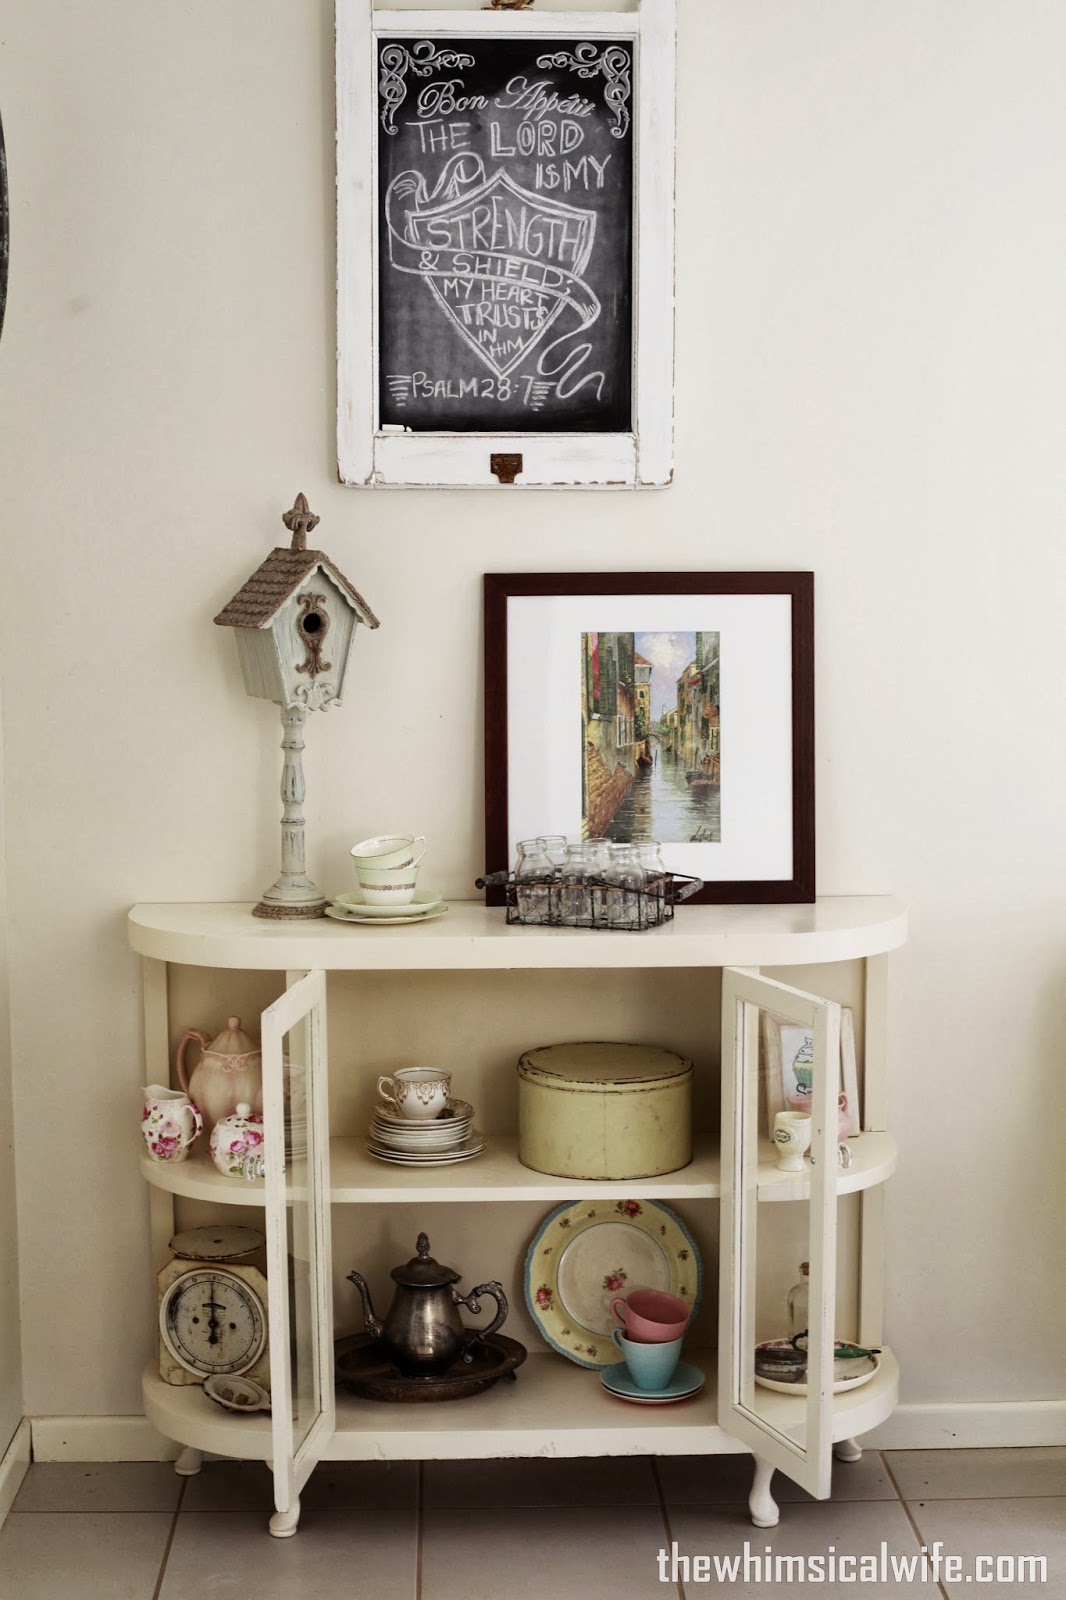 Whimsical Shelves Queen Anne Display Cabinet The Whimsical Wife Cook